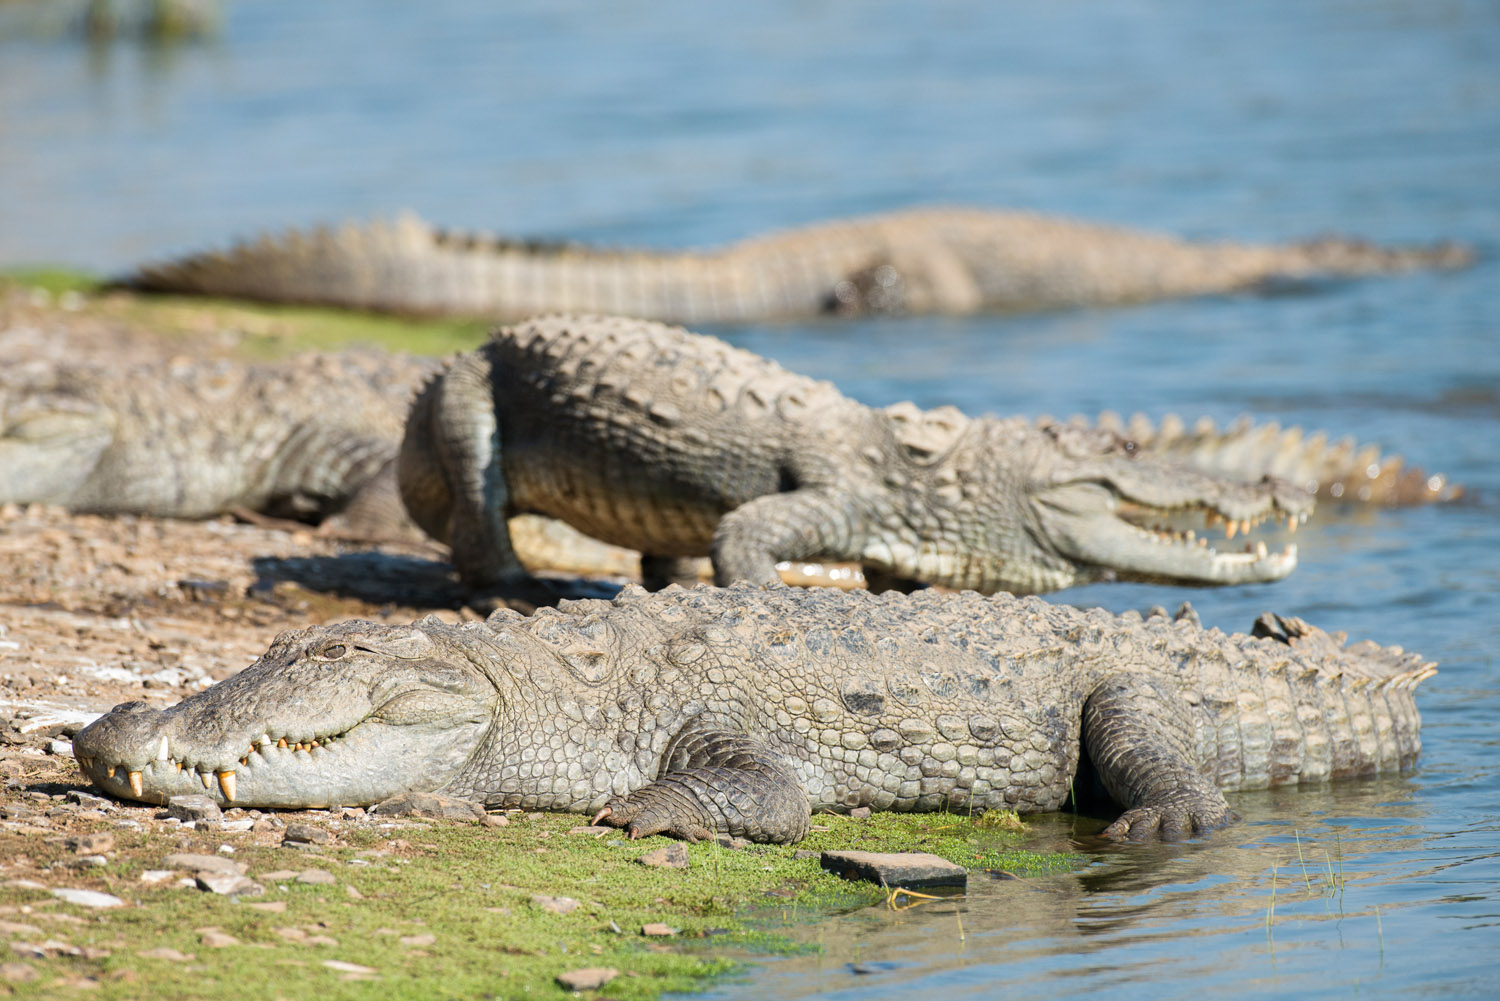 Indian 'mugger' crocodiles sunbathing at edge of Lake Rajbagh, Ranthambhore National Park, Rajasthan, India